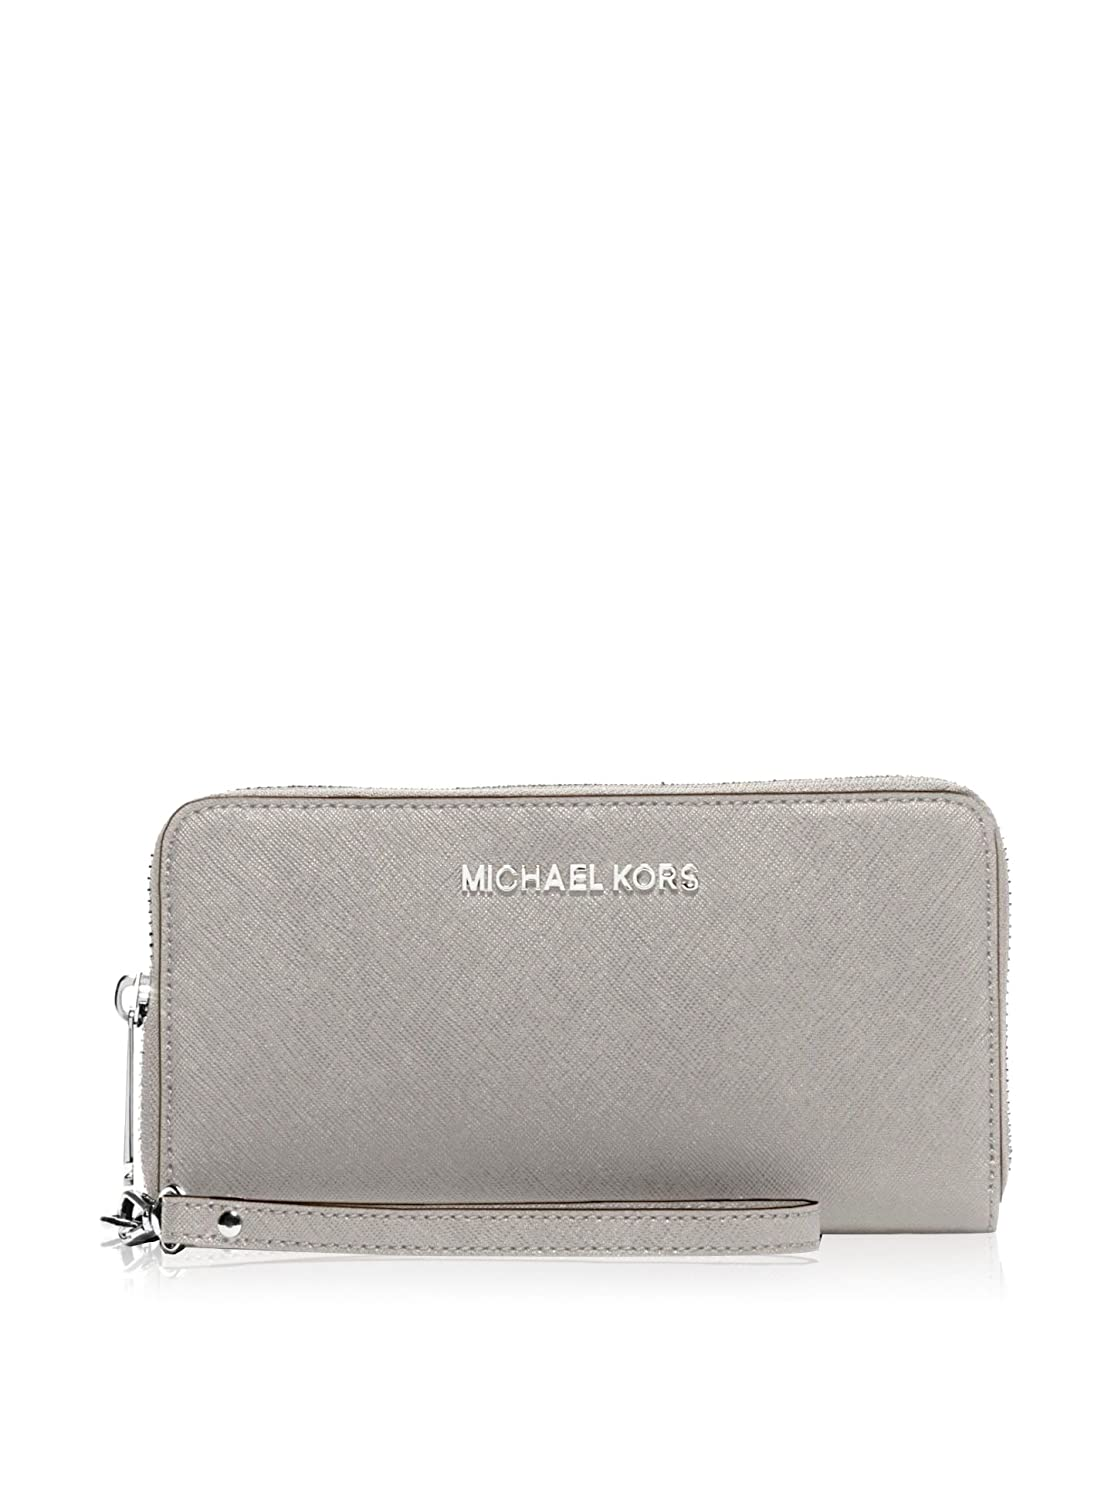 1768e2bd197933 MICHAEL Michael Kors Jet Set Travel Large Saffiano Leather Smartphone  Wristlet in Pearl Grey: Amazon.co.uk: Shoes & Bags